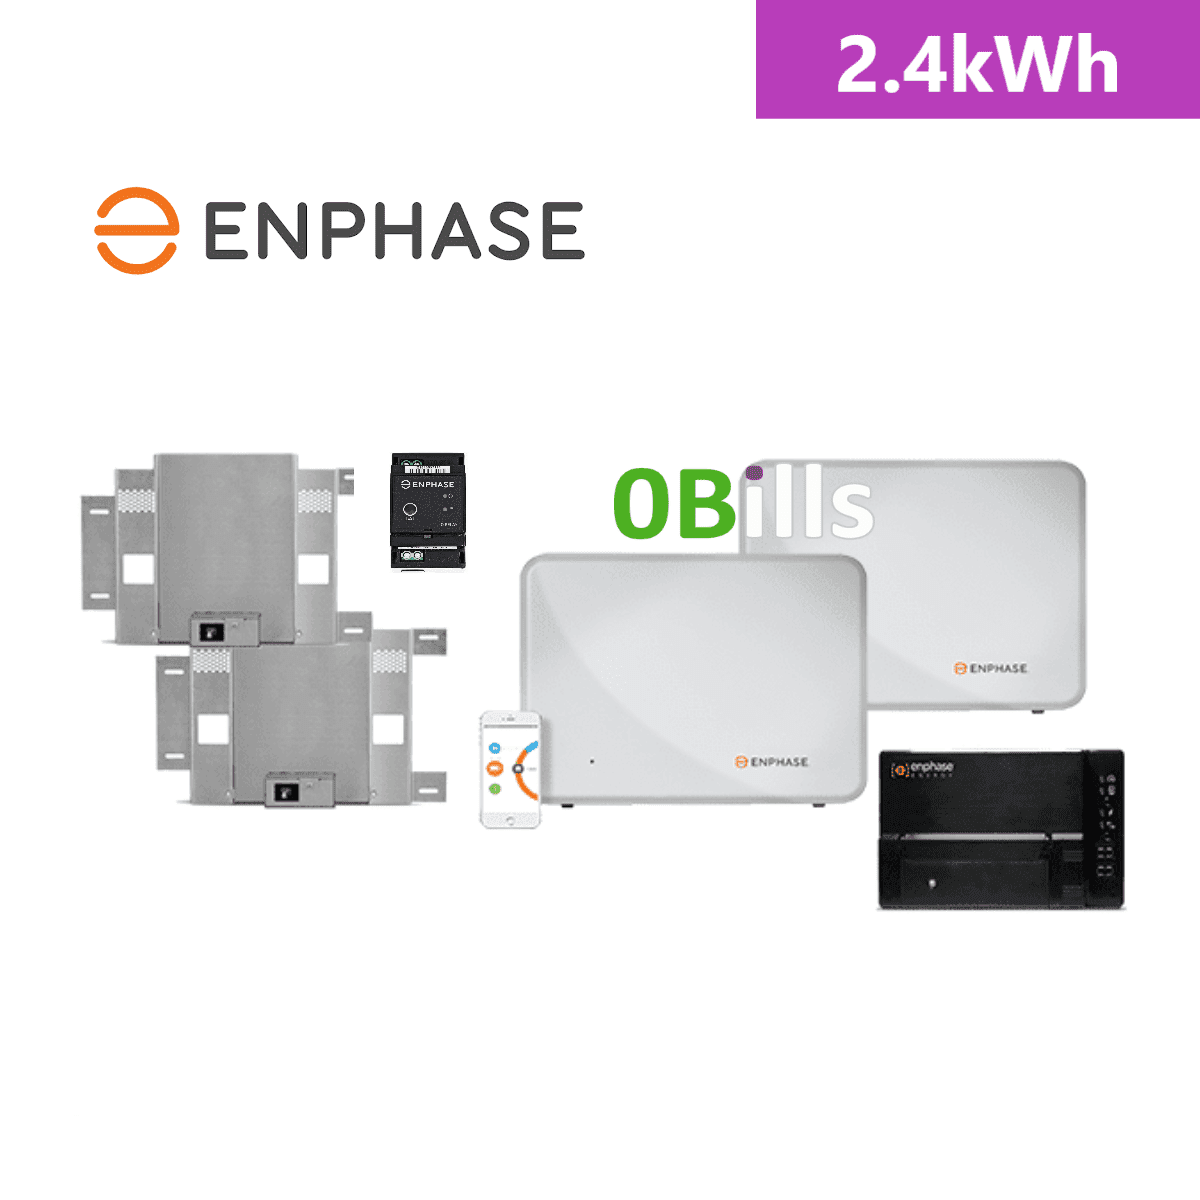 Enphase Energy AC Coupled 2.4kWh Solar Battery Storage Package